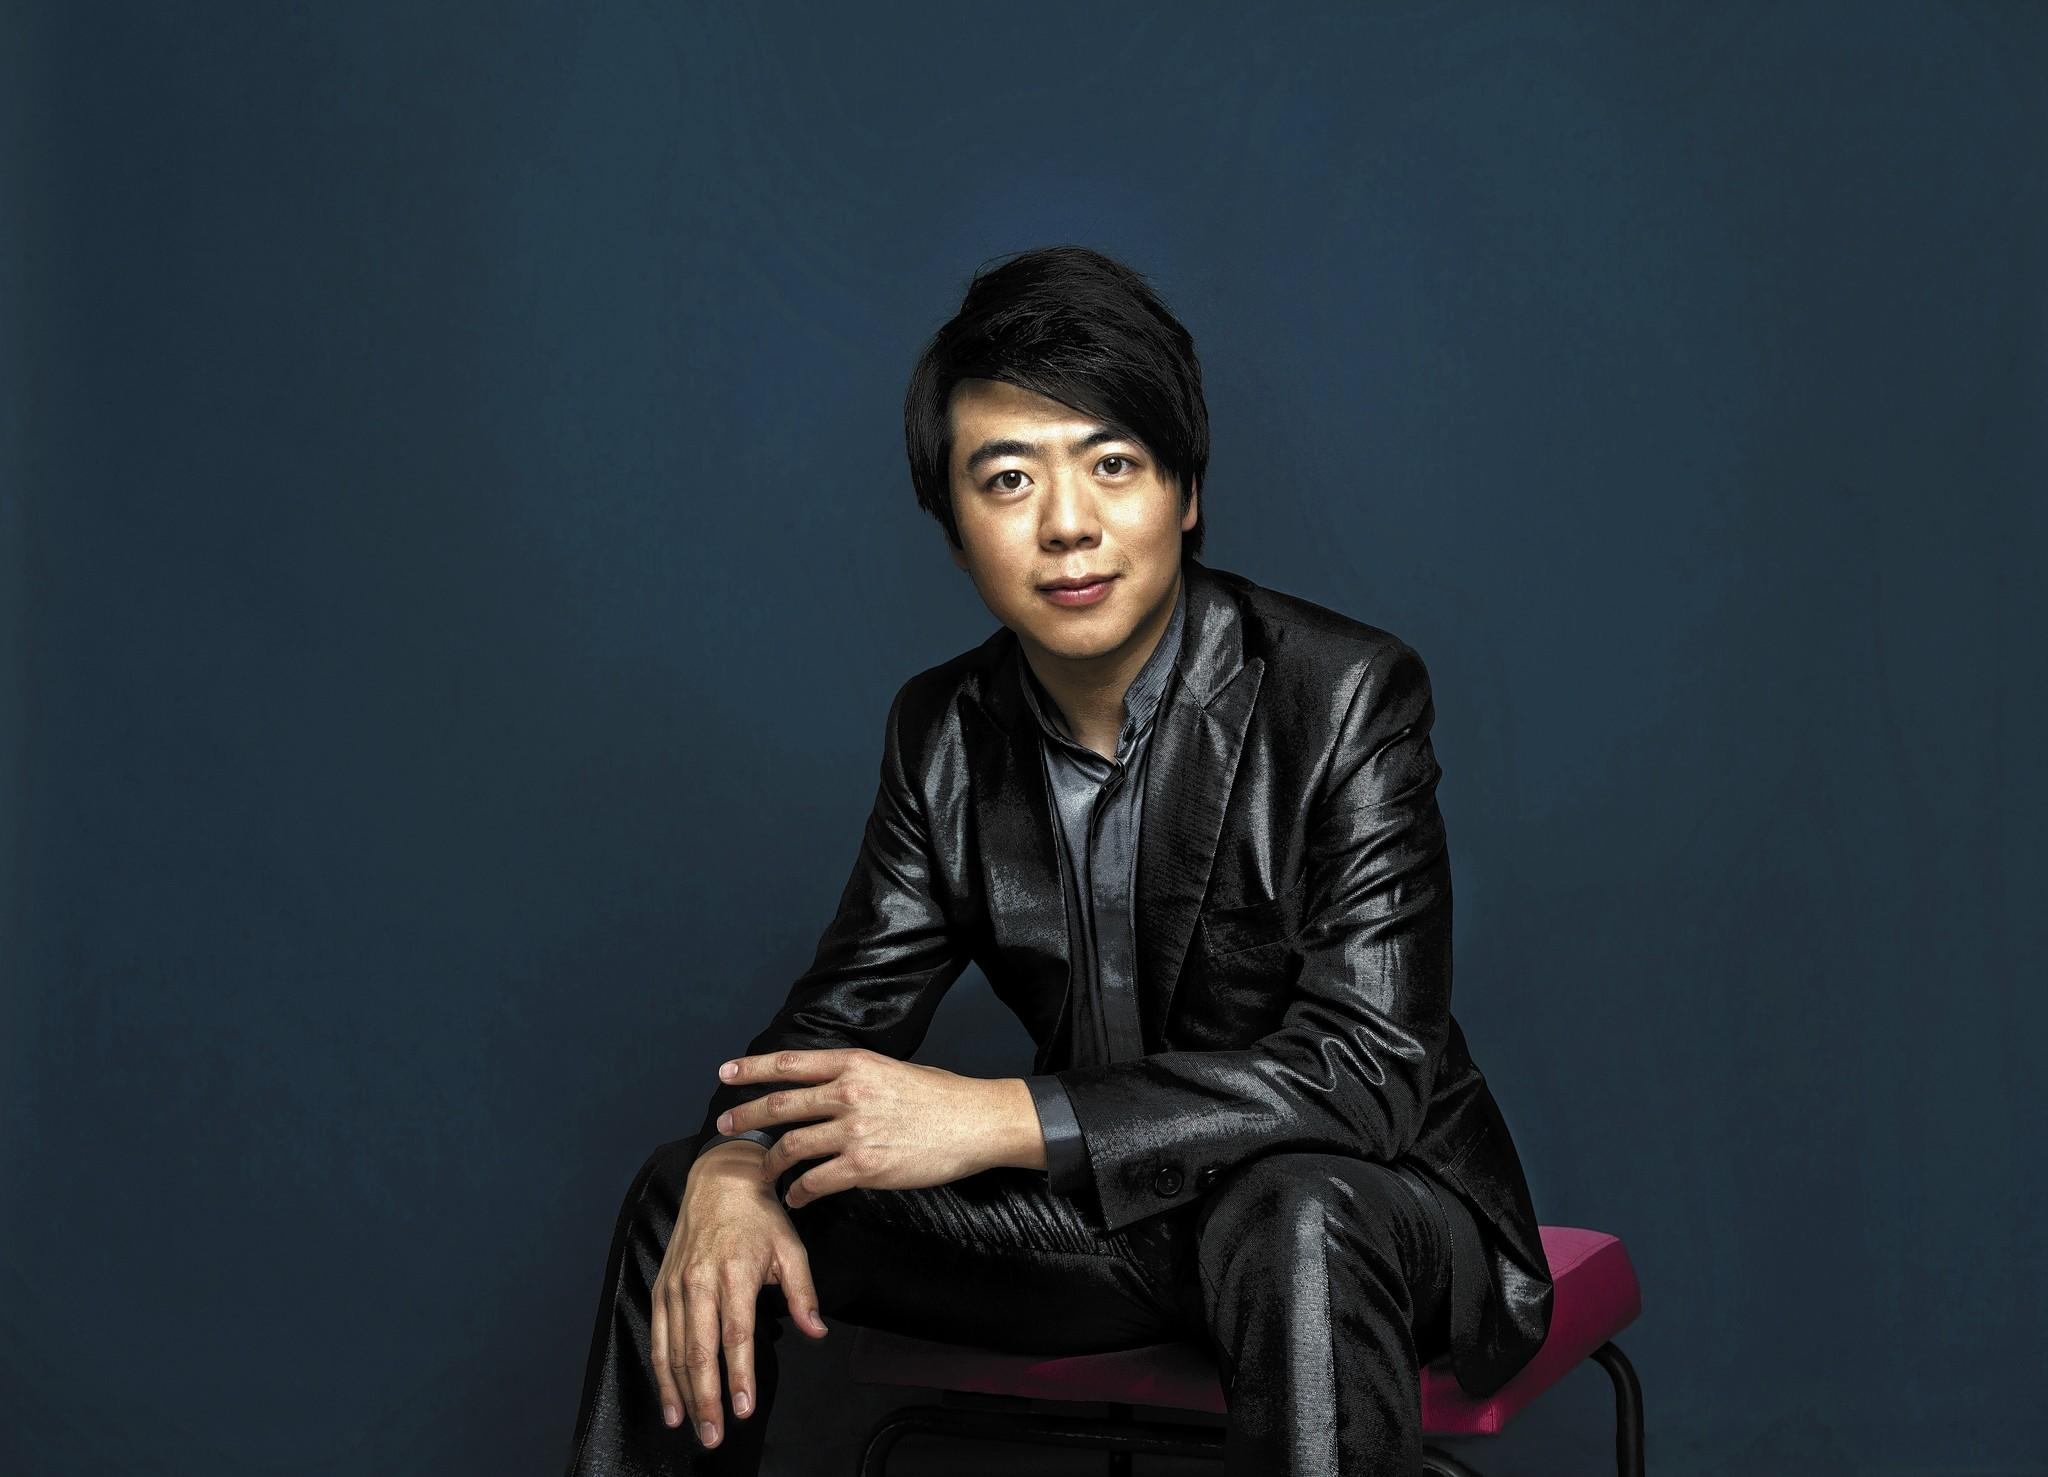 Harald Hoffmann/Courtesy Virginia Arts Festival Pianist Lang Lang will perform Feb. 13 in Norfolk's Chrysler Hall in a preview event for the 2014 Virginia Arts Festival